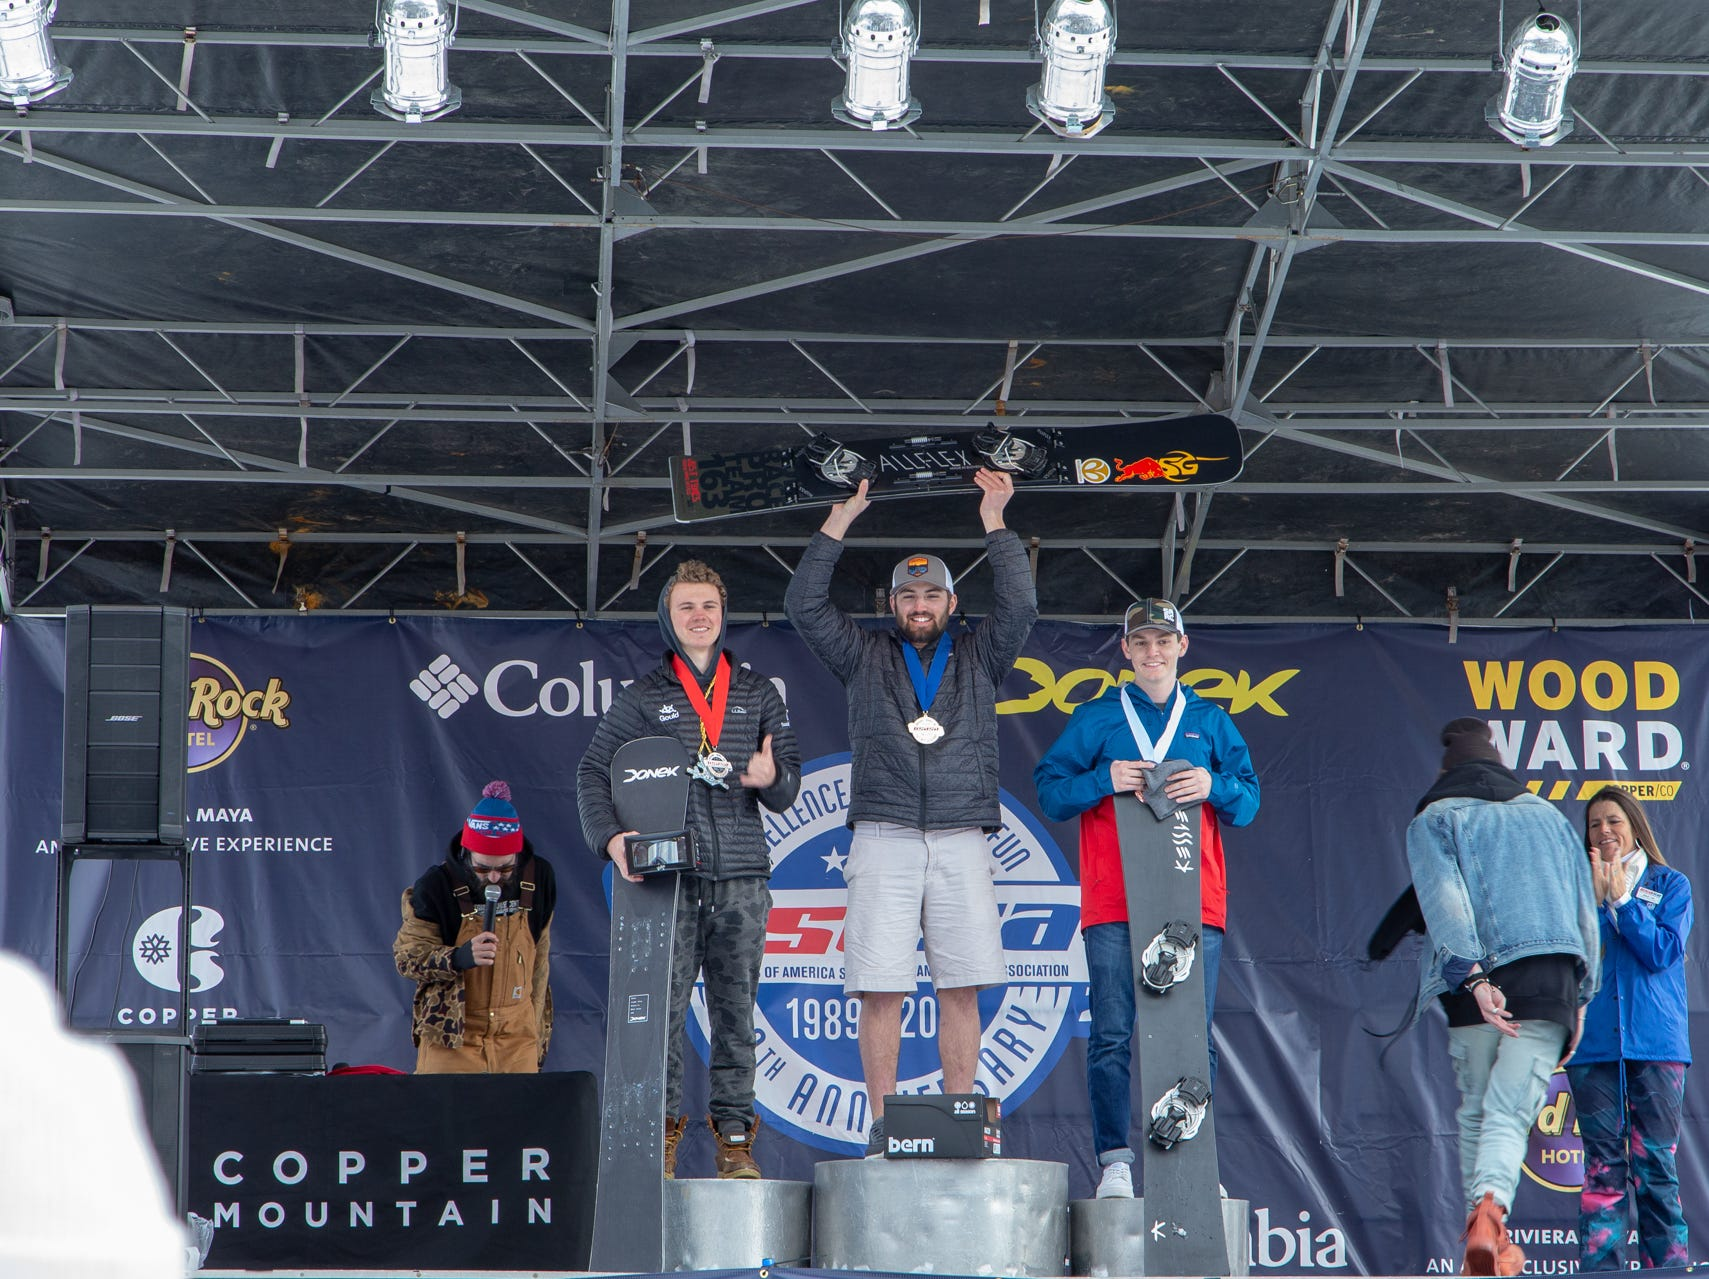 Justin Youngman of Foothill (center) / North State snowboarders compete at the 2019 USASA National Championships at Copper Mountain in Colorado.